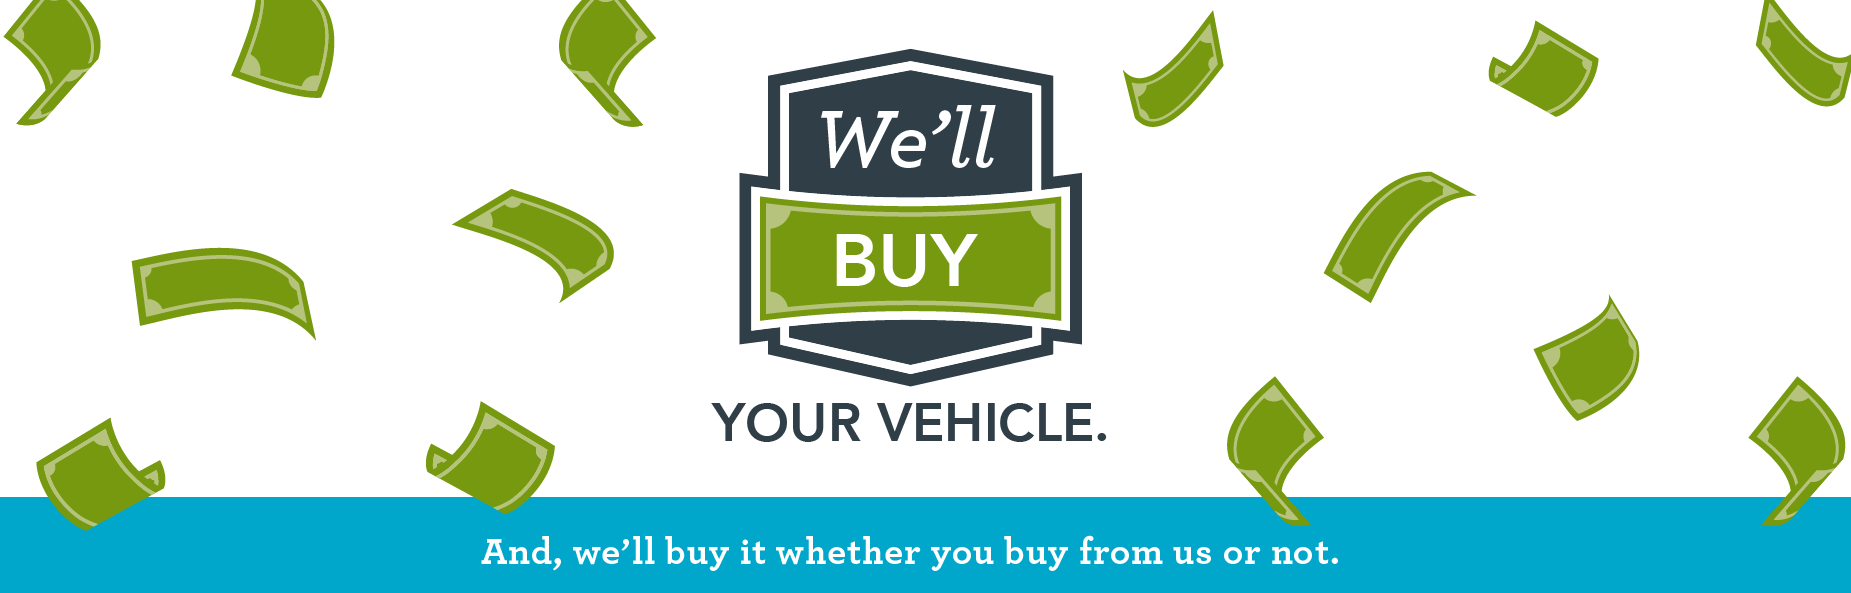 well buy your vehicle banner